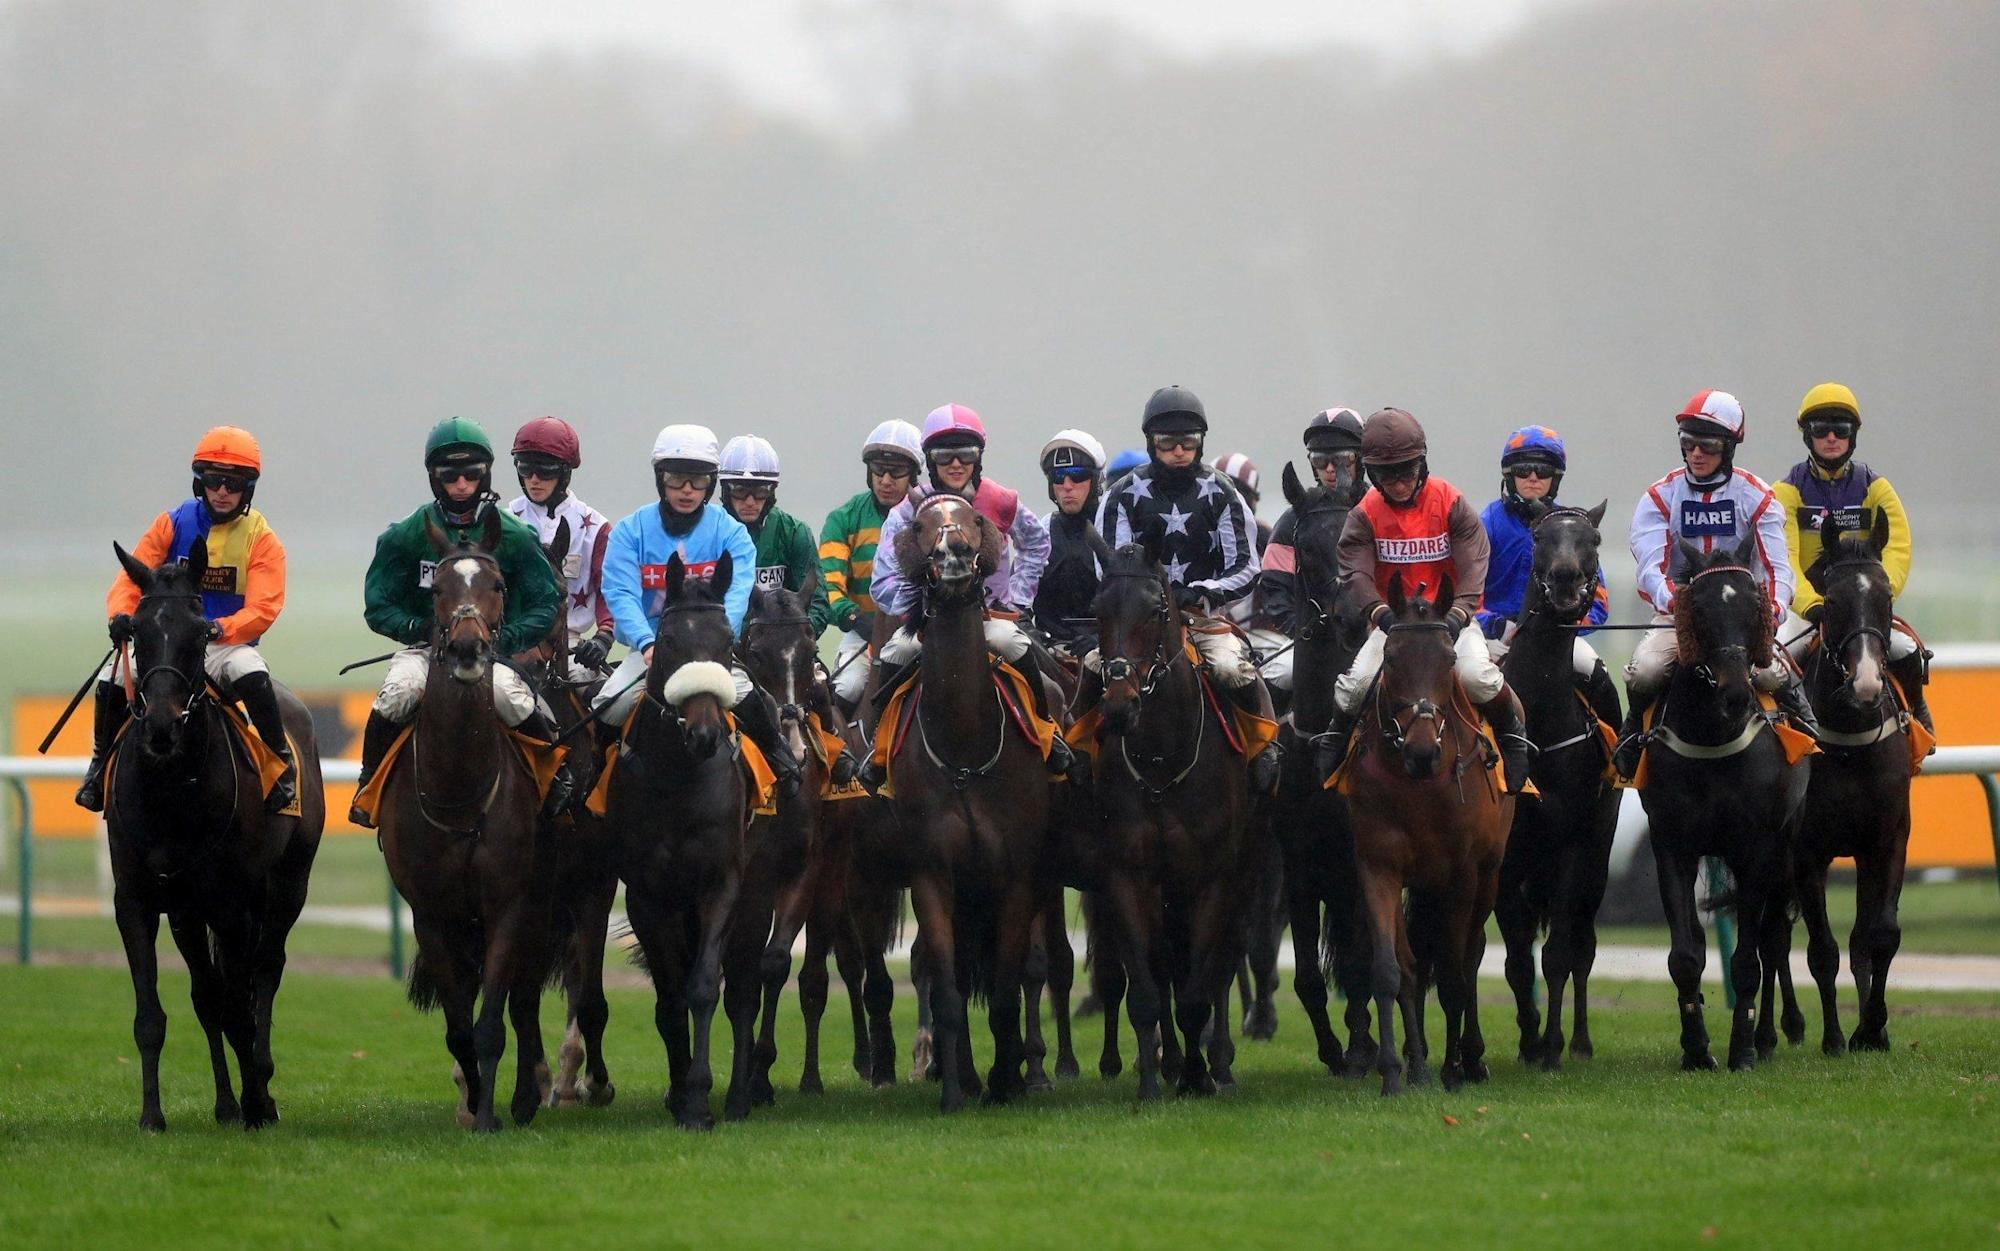 ITV Racing's one million viewers show that racing is more than holding its own against other sports